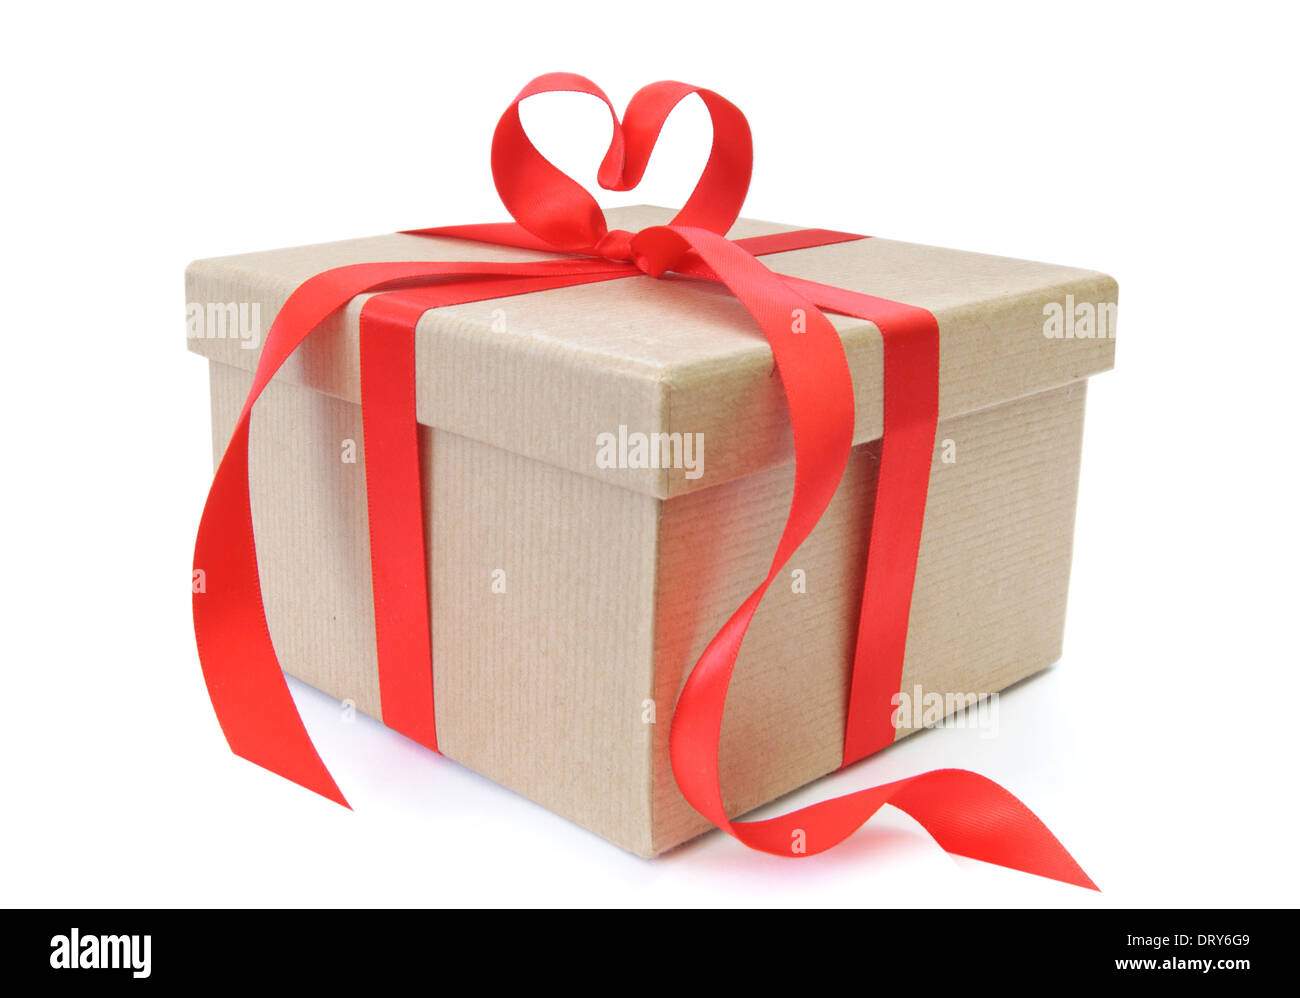 Gift box with heart shaped bow - Stock Image